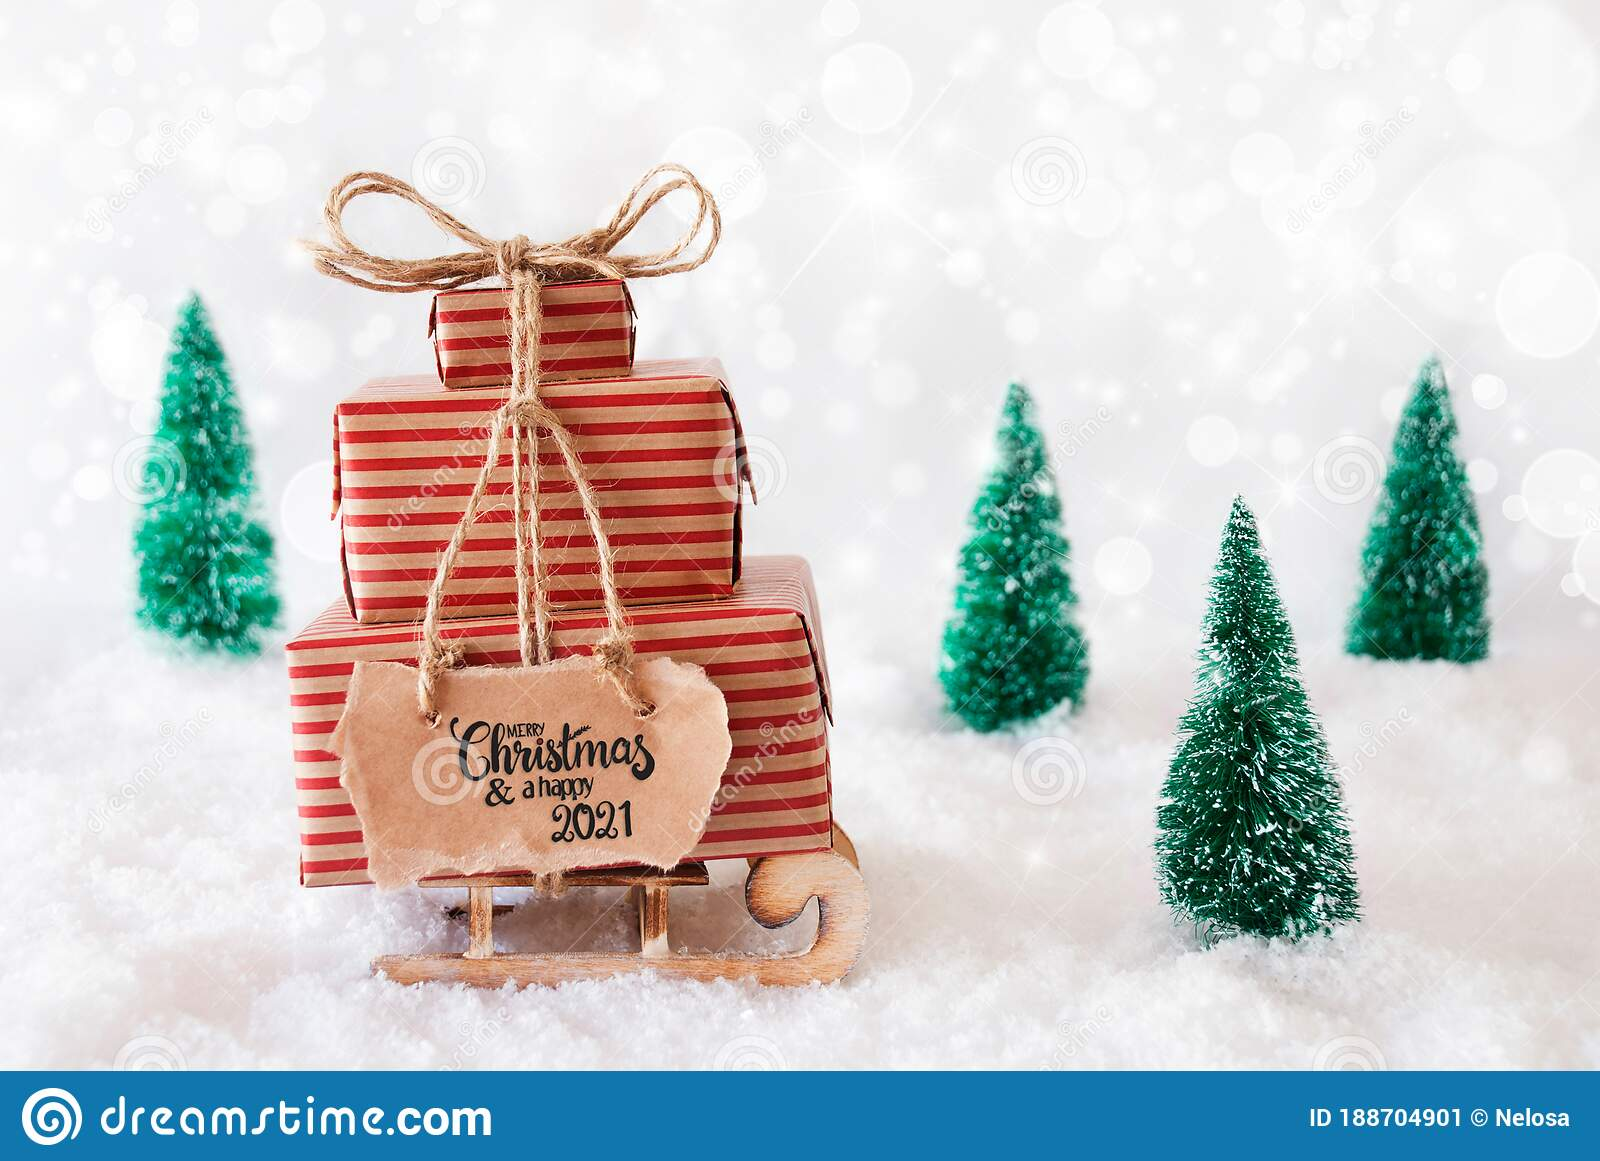 Merry Christmas 2021 Pictures Gray Sled Present Snow Merry Christmas And A Happy 2021 Gray Background Stock Image Image Of Calligraphy Snowy 188704901